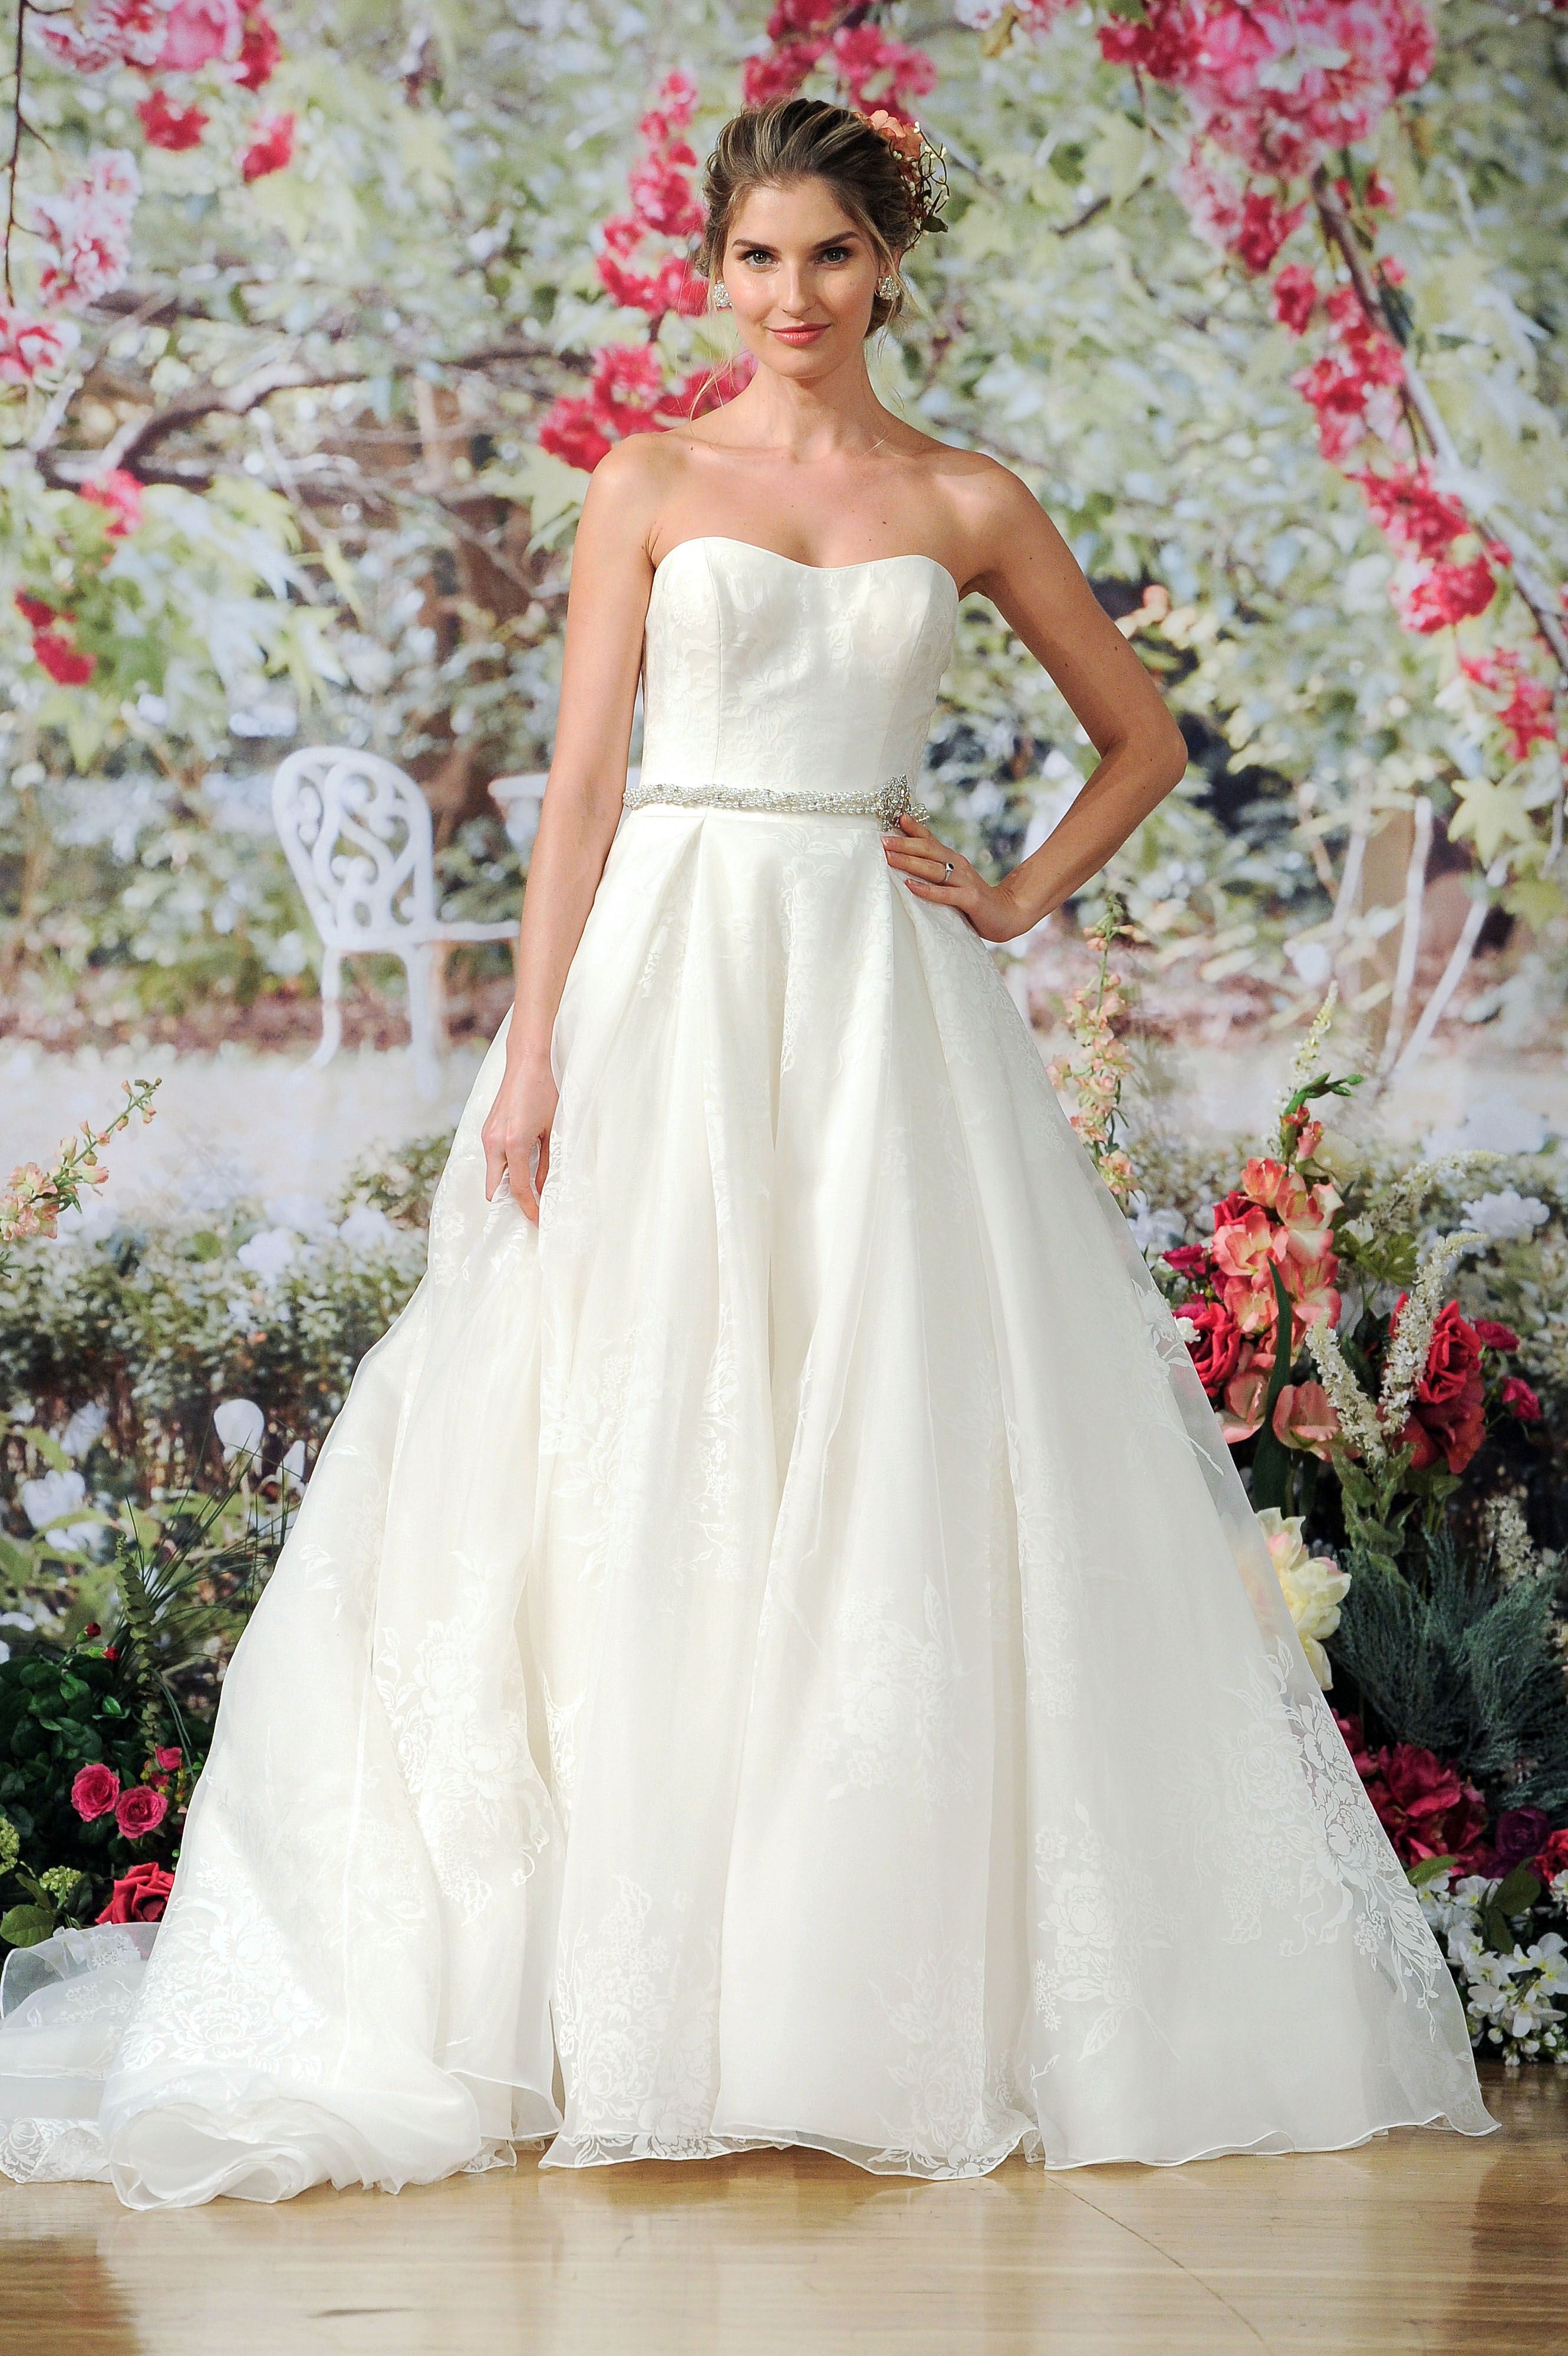 Maggie Sottero Fall 2017 Strapless Wedding Dress with Belt